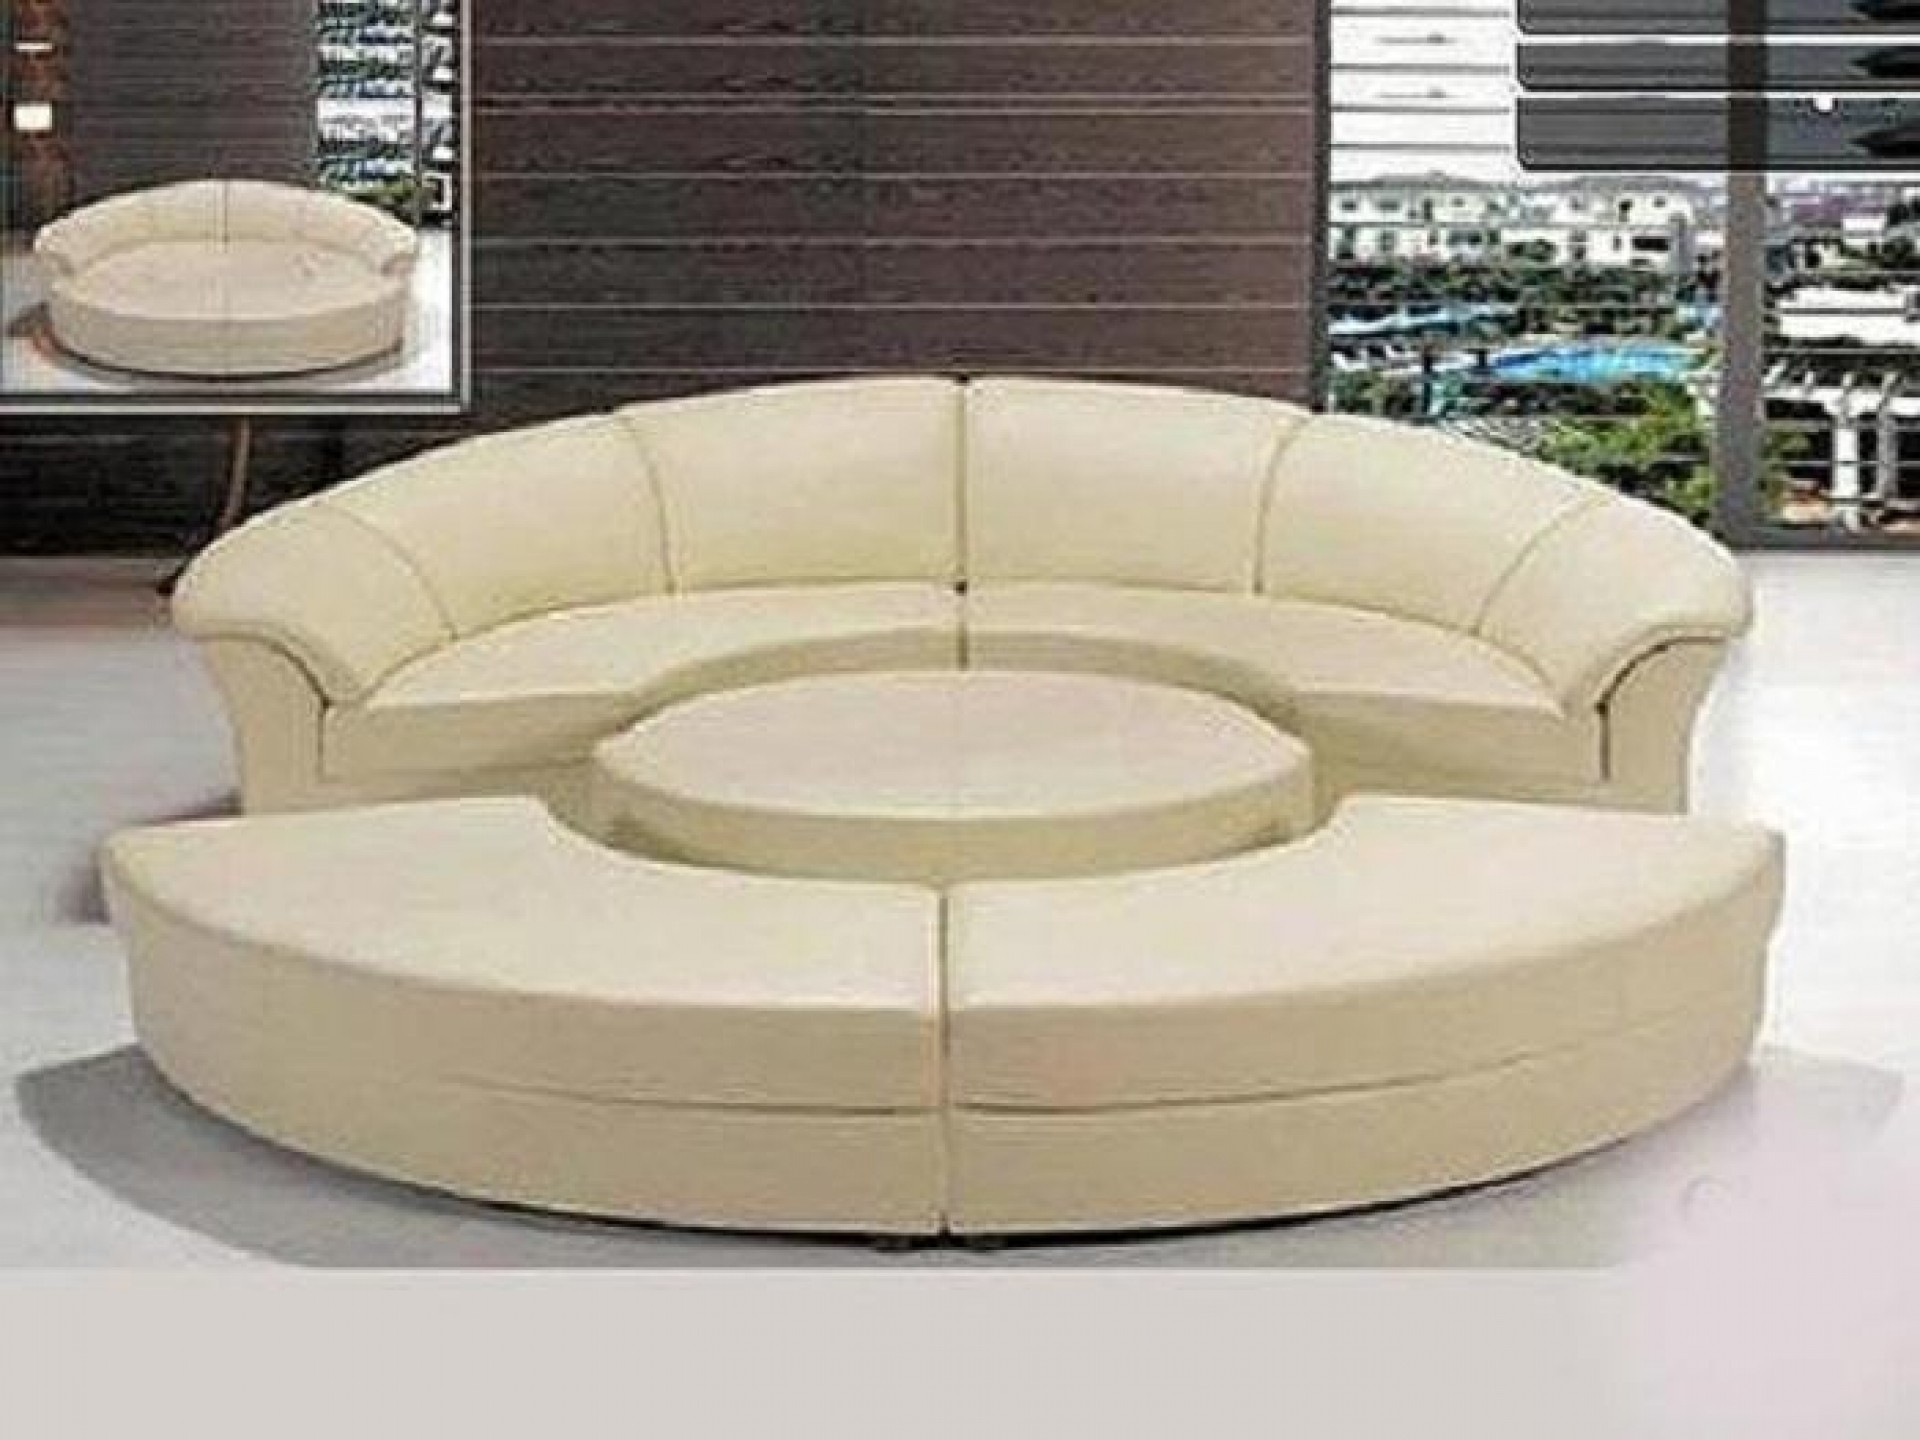 Awesome sectional couches for sale with cushions and wooden legs for home interior ideas with cheap sectional couches for sale